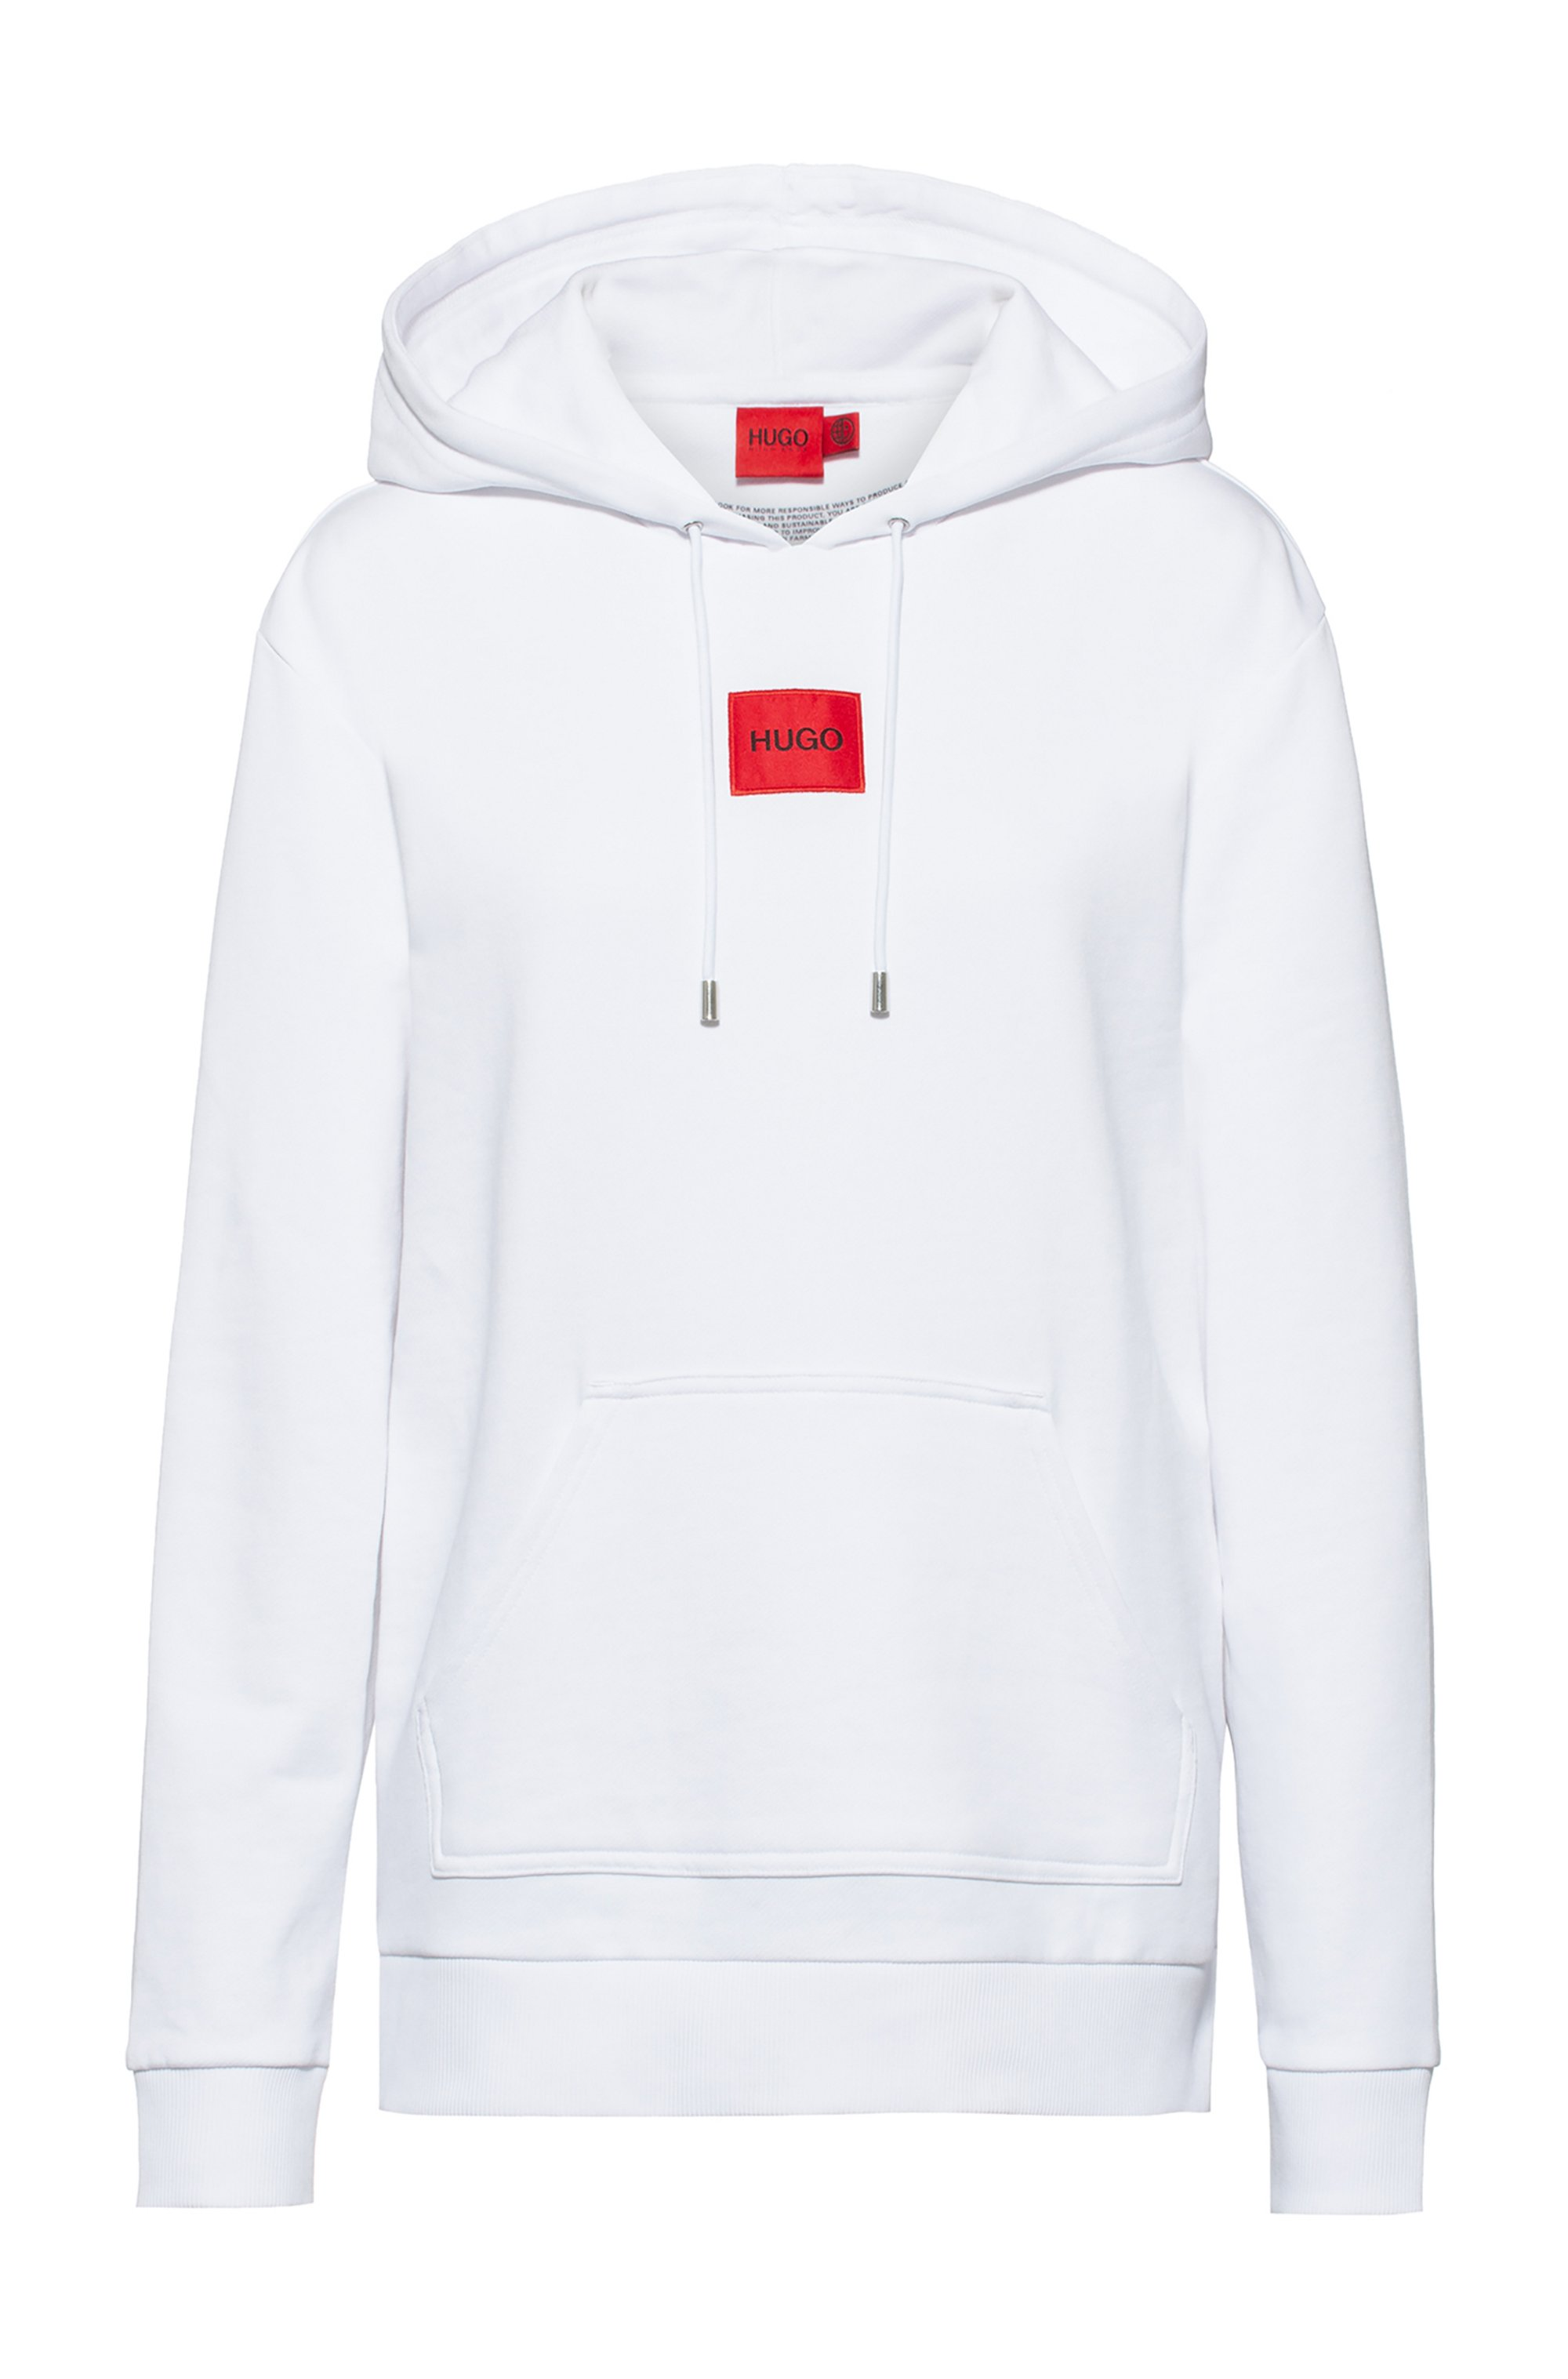 Cotton hooded sweatshirt with red logo label, White